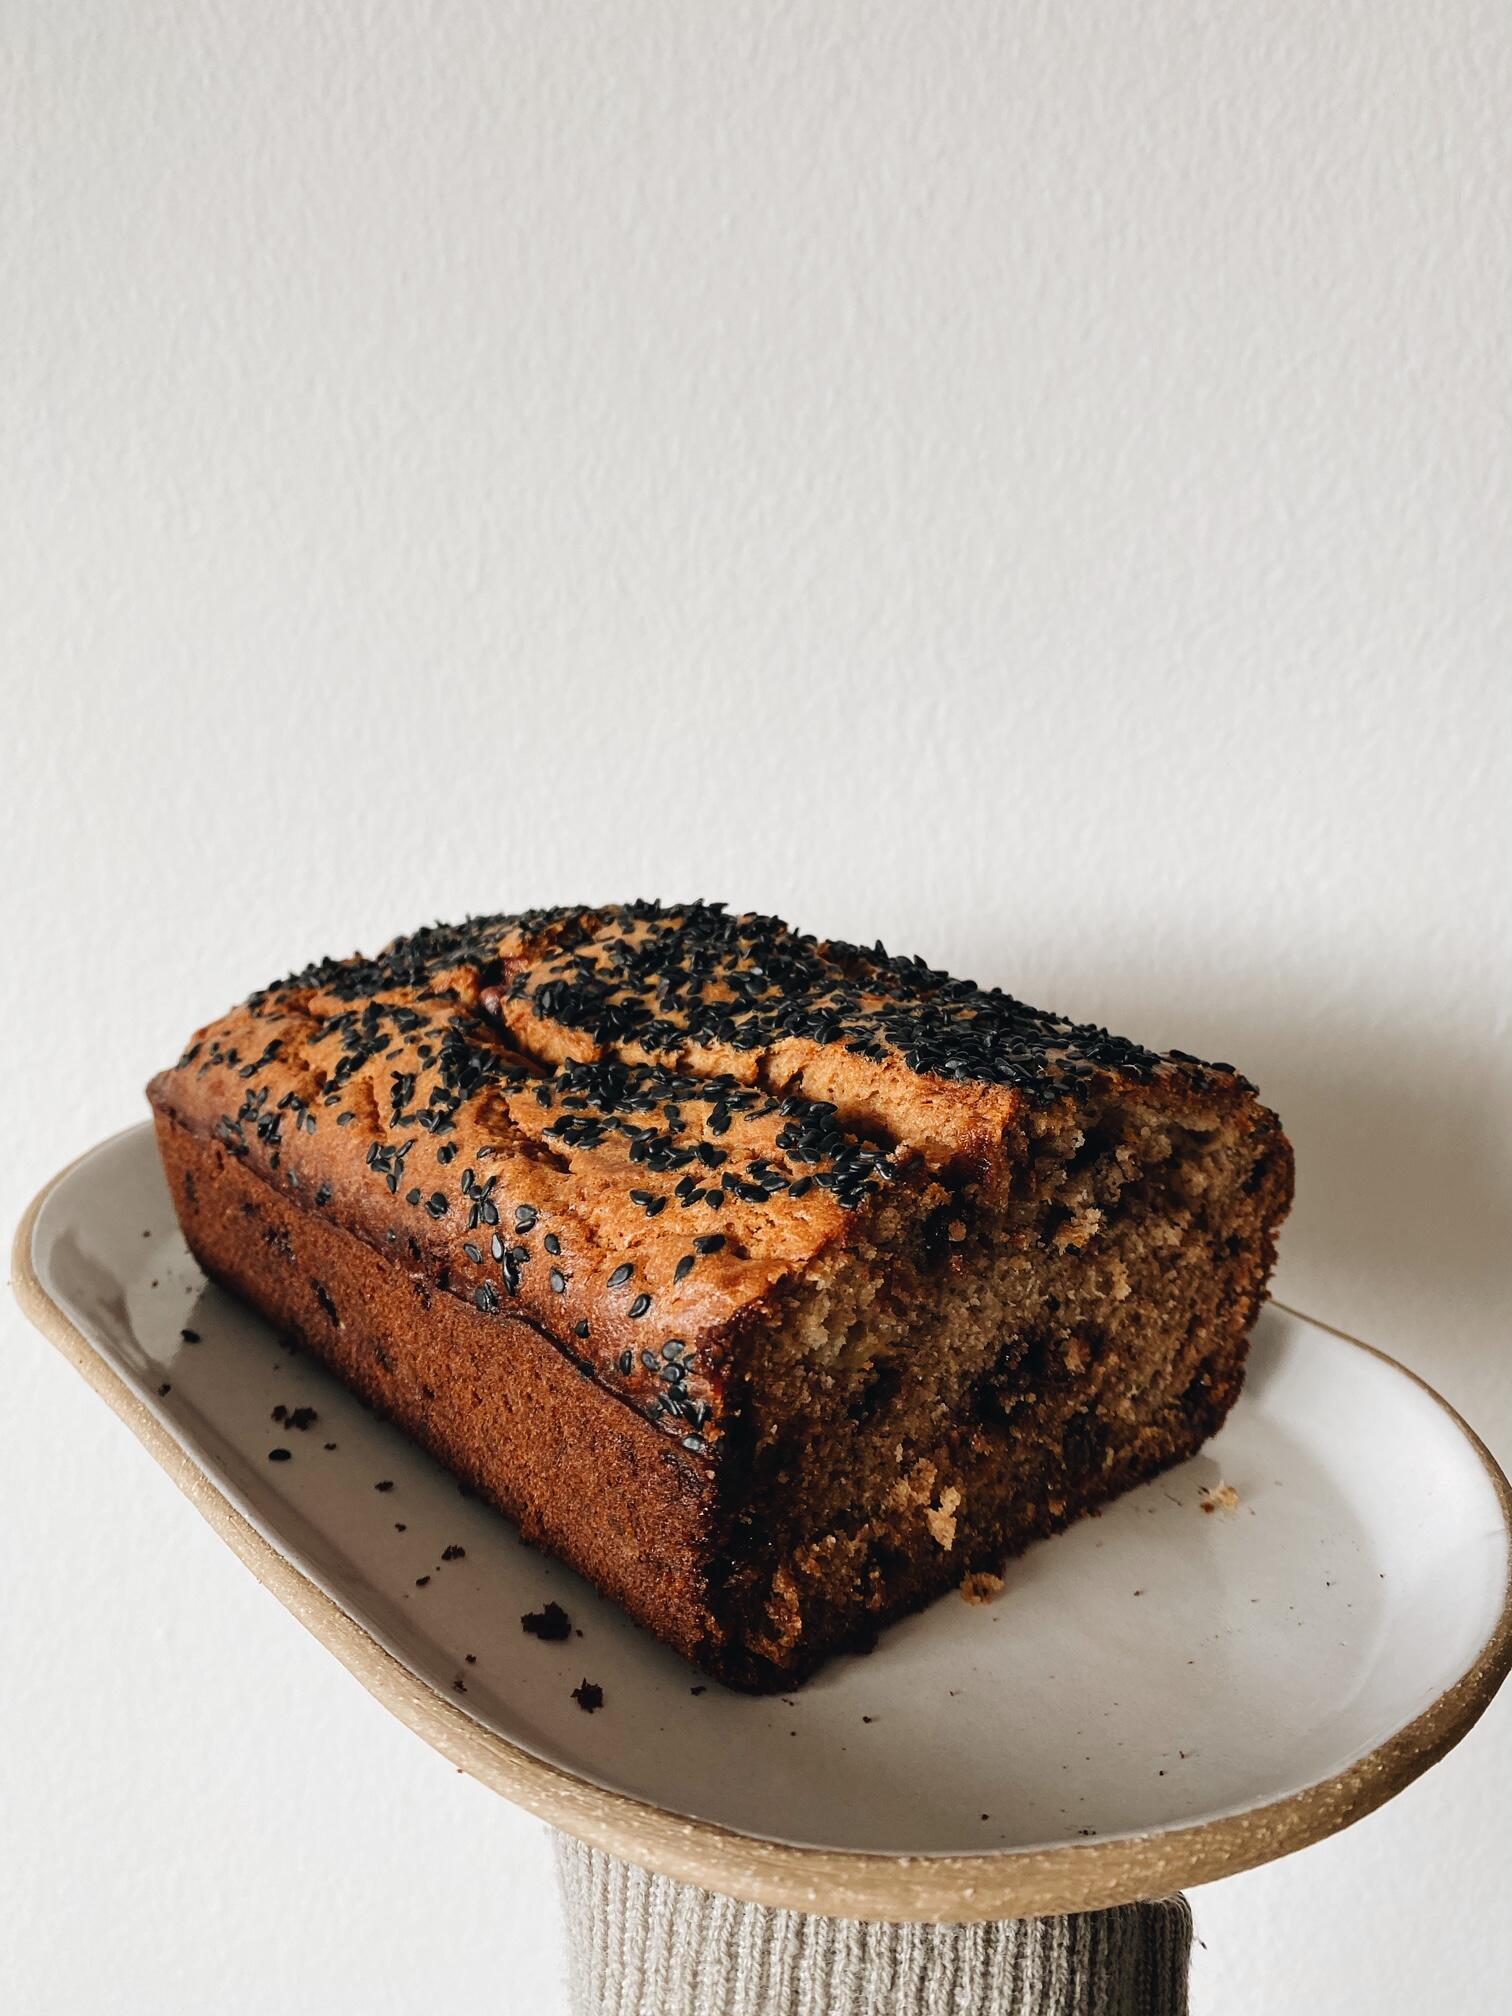 Joanne Chang's Flour Bakery banana bread, with a twist